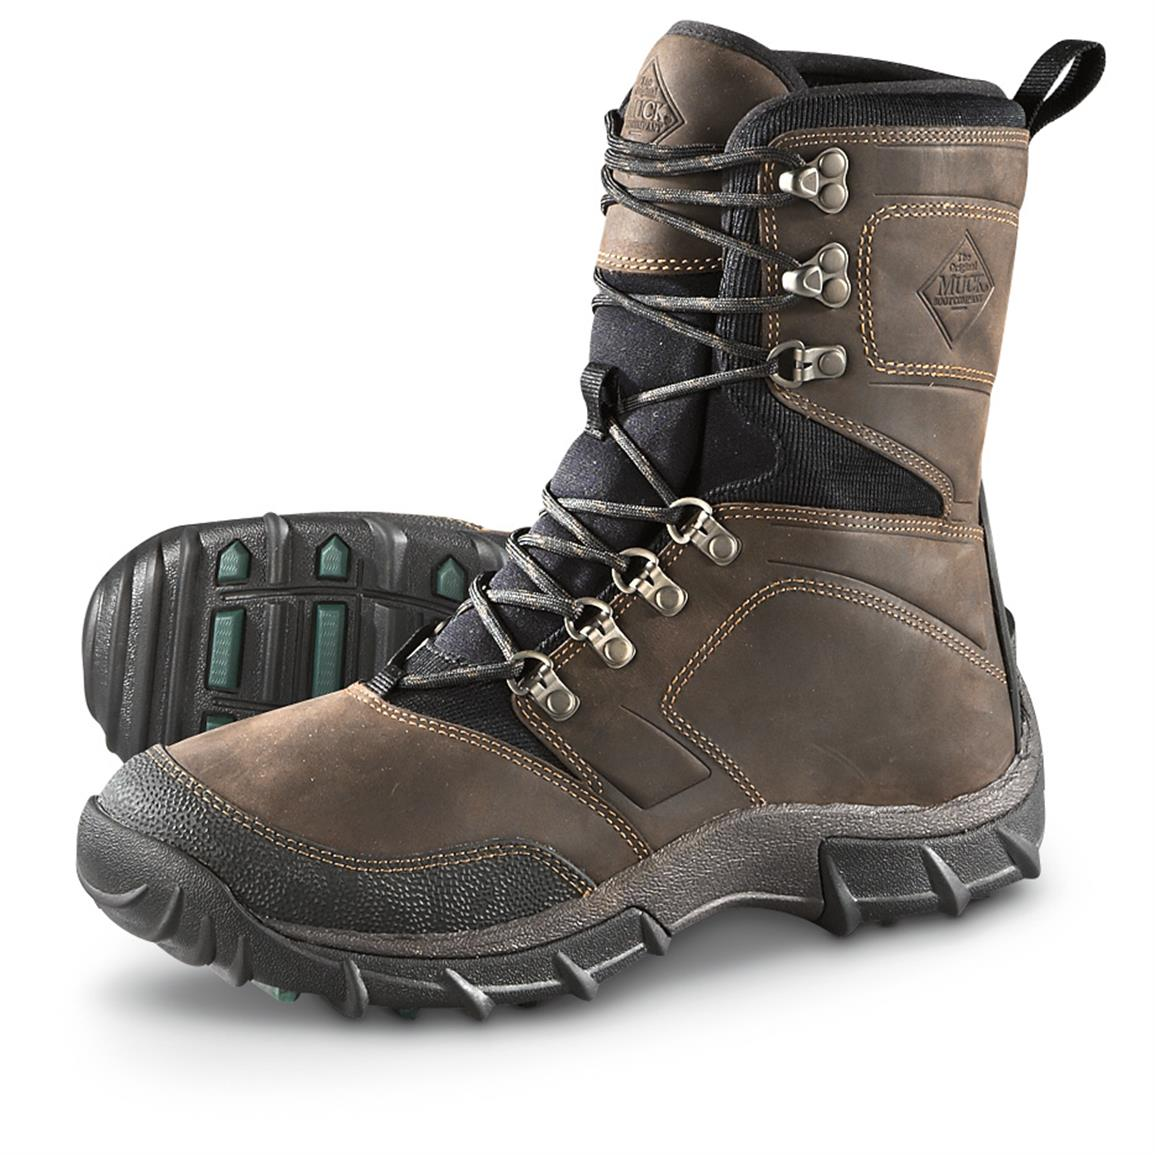 Muck Boots Peak Hardcore Hiking Boots - 609872, Winter & Snow ...